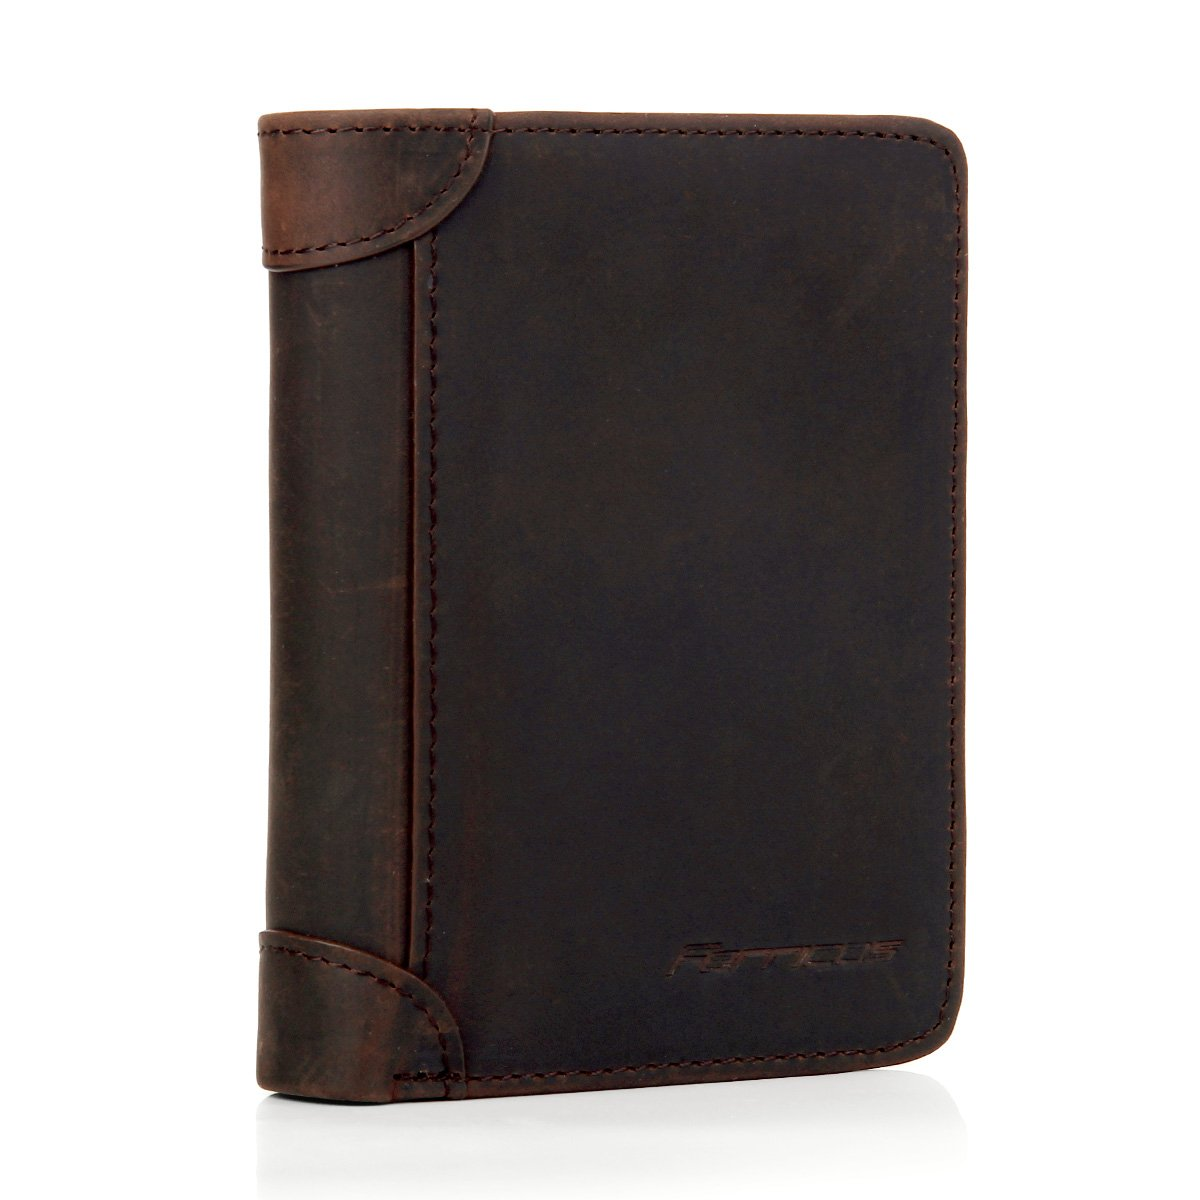 Ferricos RFID Men Cowhide Leather Portrait Short Purse Extra Capacity Trifold Inner Pocket Wallet Card Case Cash Coin Bag Money Clip ID Photo Holder Men's Gift Crazy Horse Dark Coffee